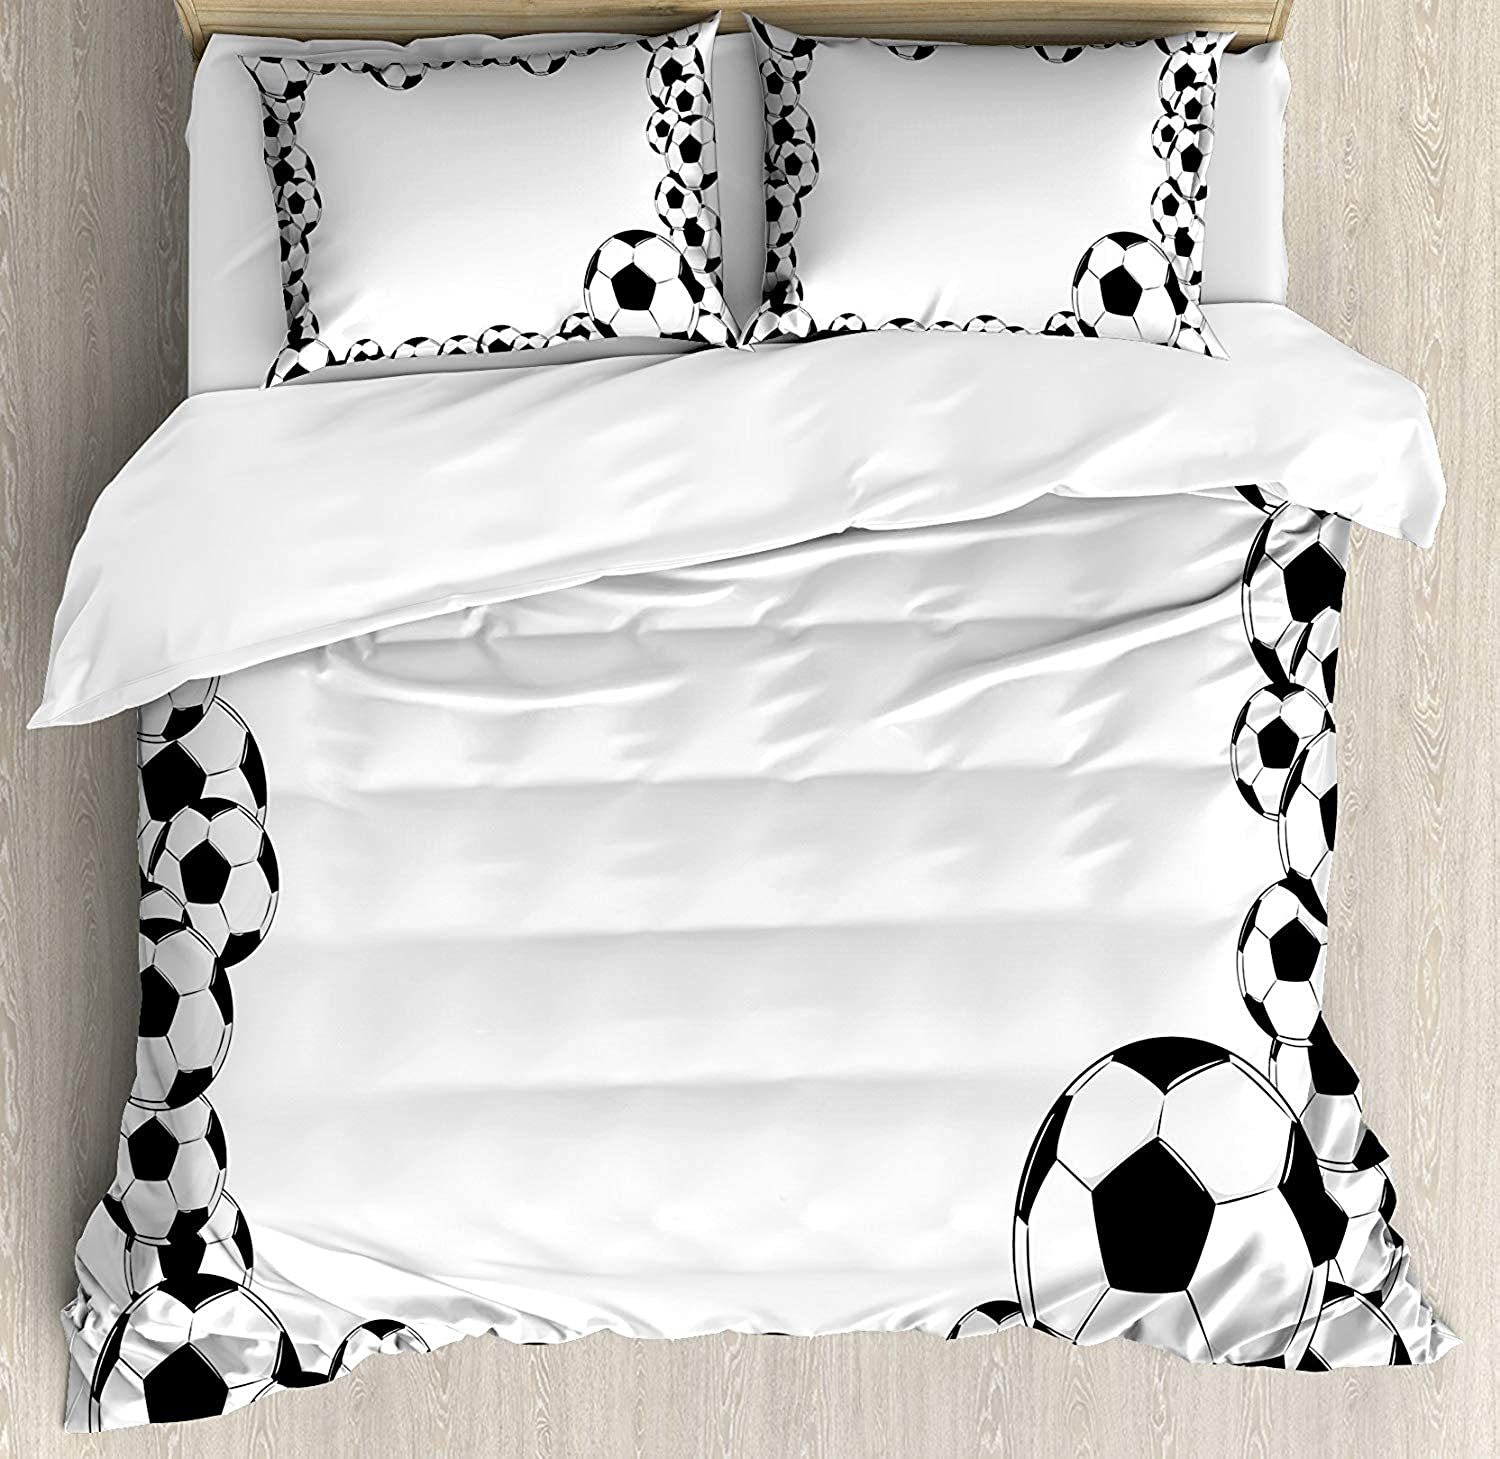 Soccer Duvet Cover Set Twin Monochrome Football Frame Pattern Abstract Illustration Playing Sports Game Bedding Set 4 Piece Lightweight Bed Comforter Covers Includes 2 Pillow Shams White Charcoal Grey